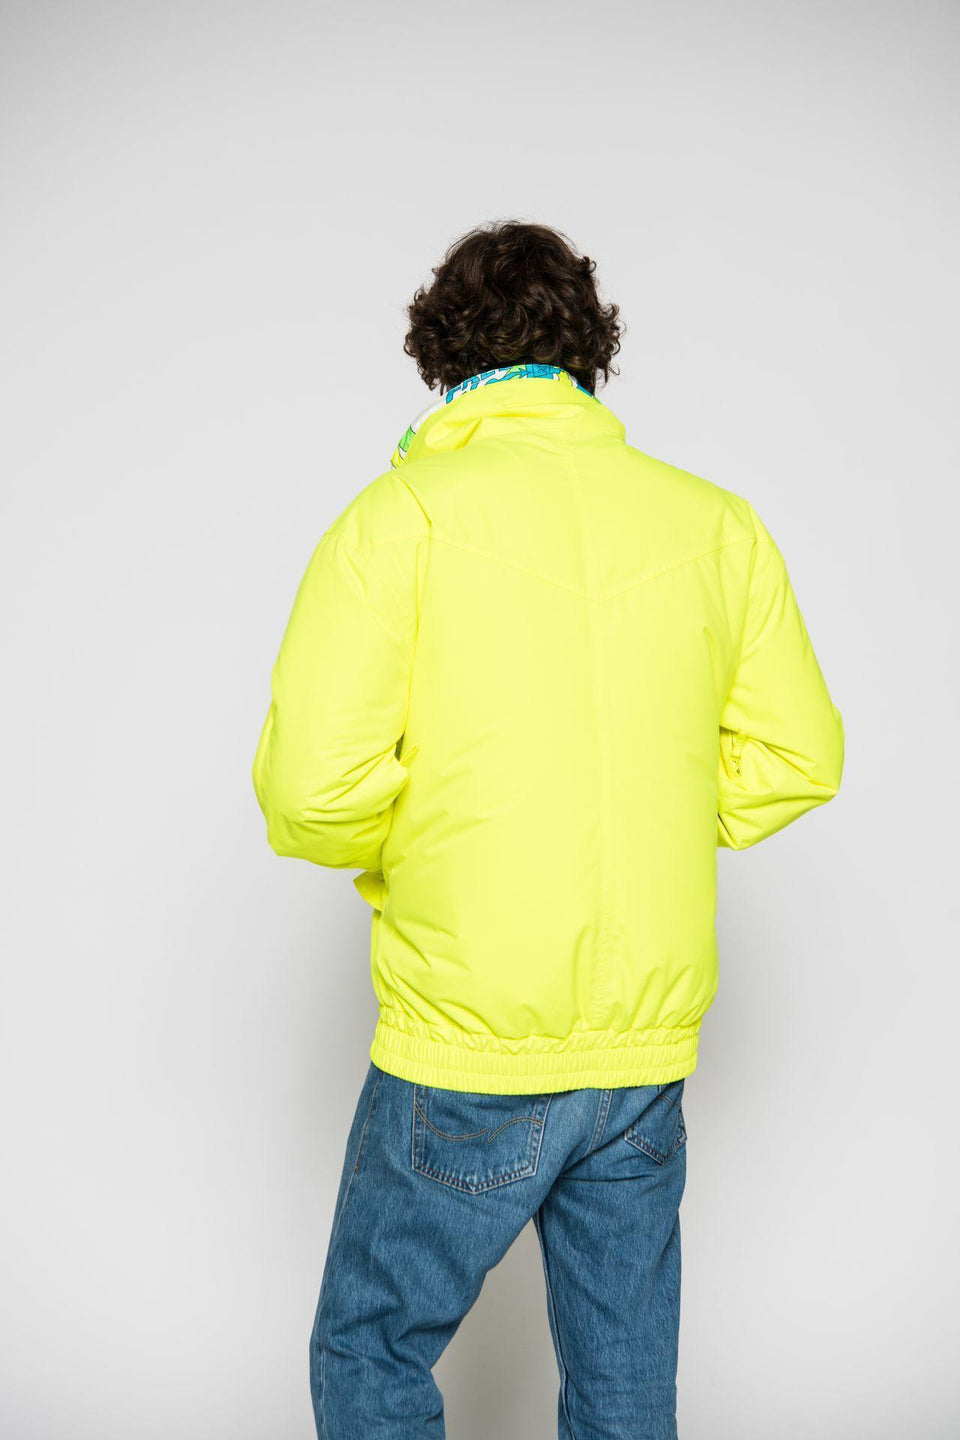 Skijacke-Herren-Men-Jacket-SAVOGNIN 89-YELLOW-Elho-Freestyle-Bild-4